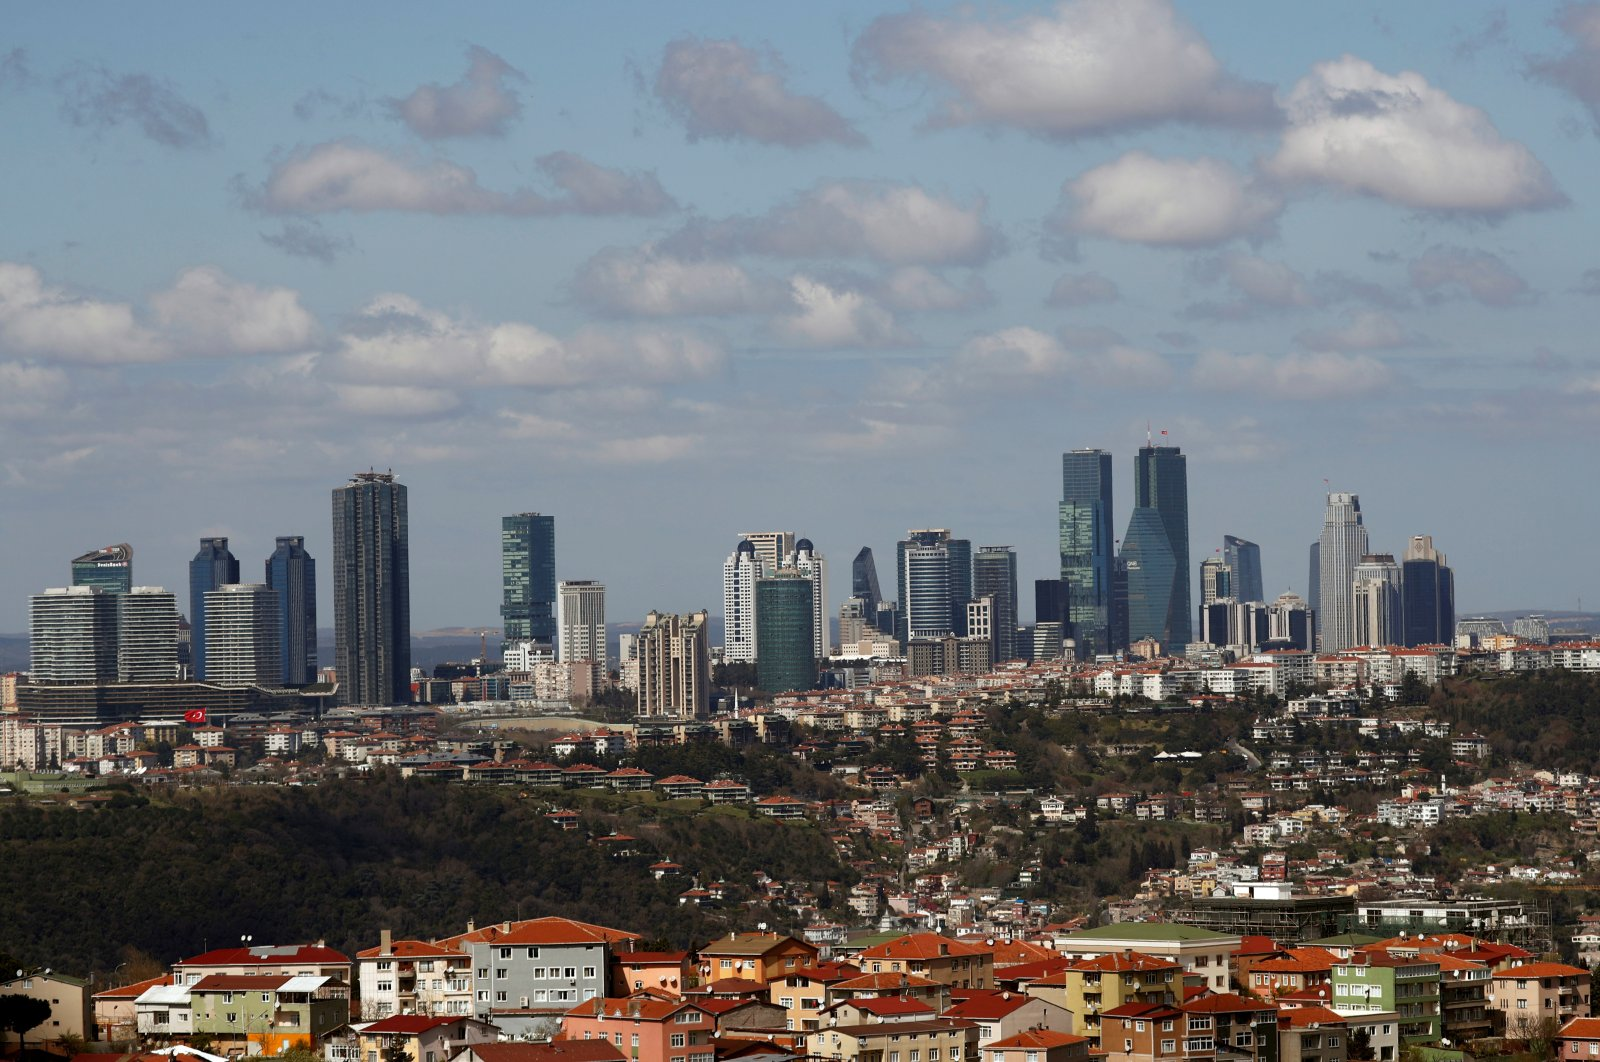 Skyscrapers are seen in the business and financial district of Levent, which hosts the headquarters of leading banks and companies, in Istanbul, Turkey, March 29, 2019. (Reuters Photo)